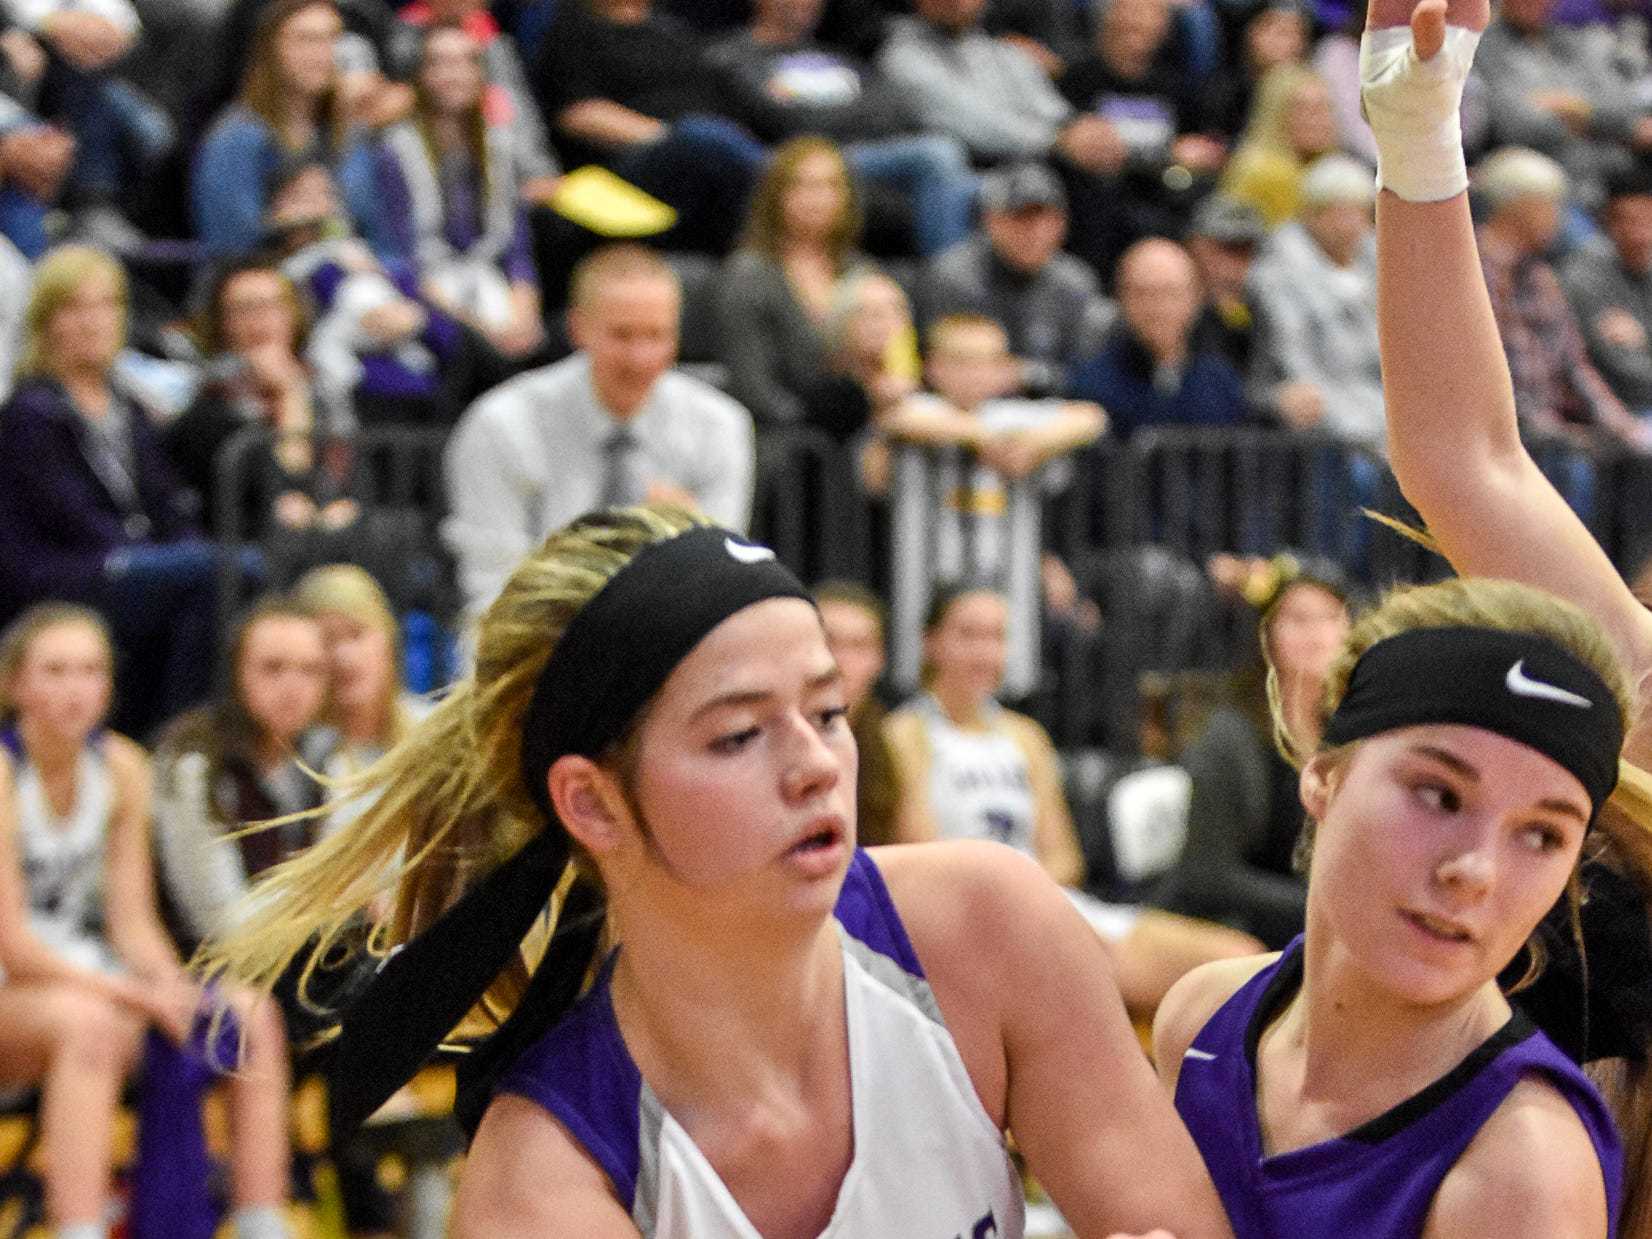 Indianola's Mara Bishop and Norwalk's  Jayden Lammers watch Bishop's pass. The Indianola girls' basketball team picked up their first win of the season with a 57-34 home victory over Norwalk on Nov. 30, 2018.